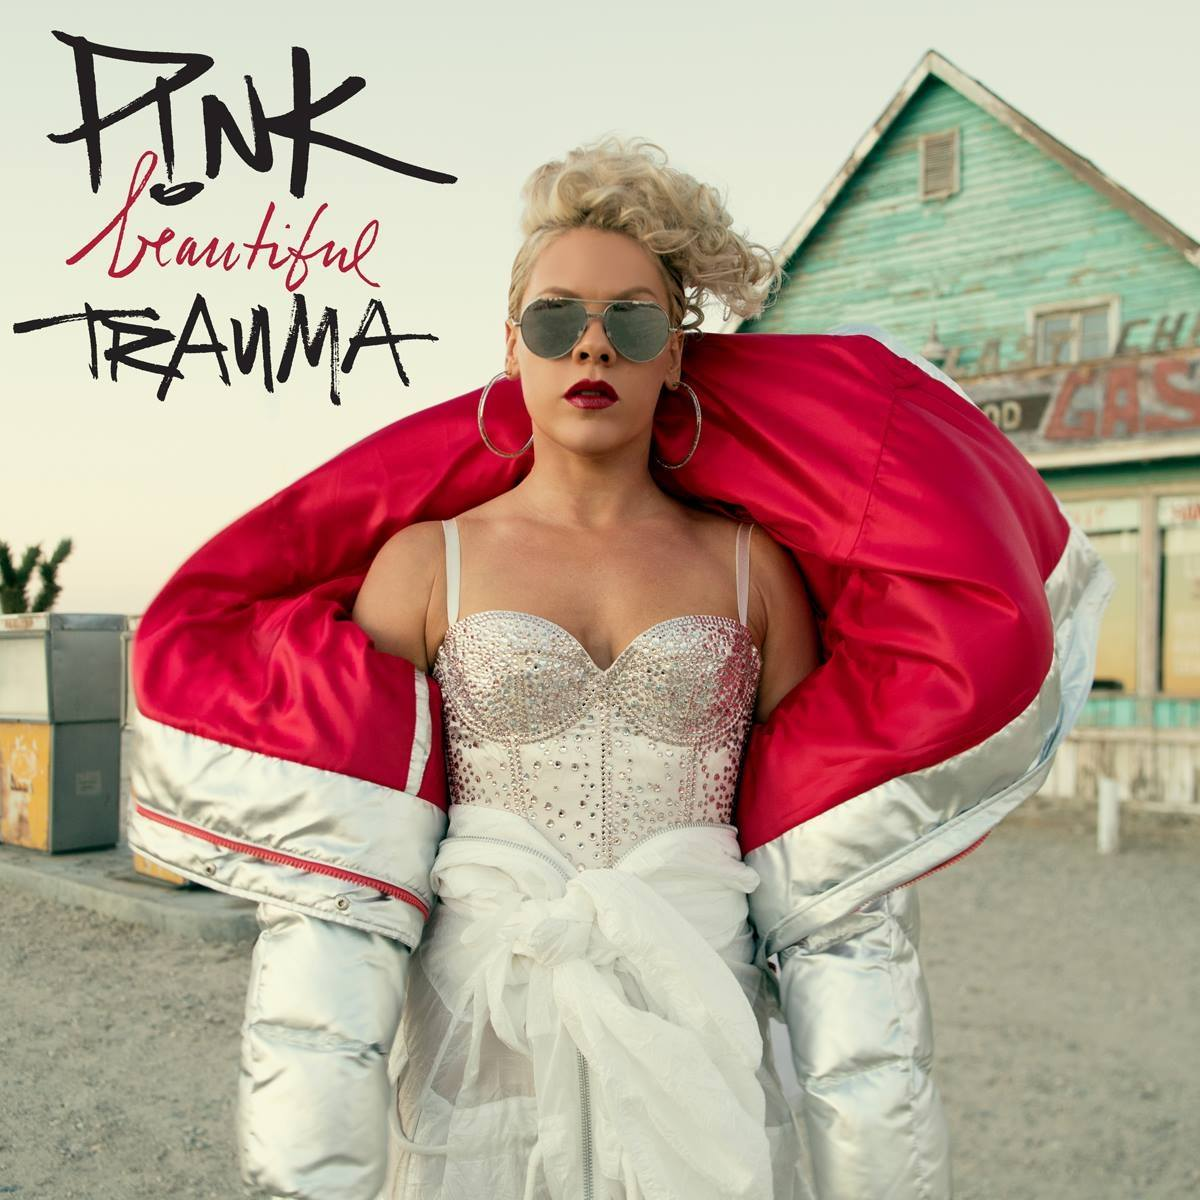 P!NK is back | Seventh Studio Album Beautiful Trauma Set For Release Oct 13